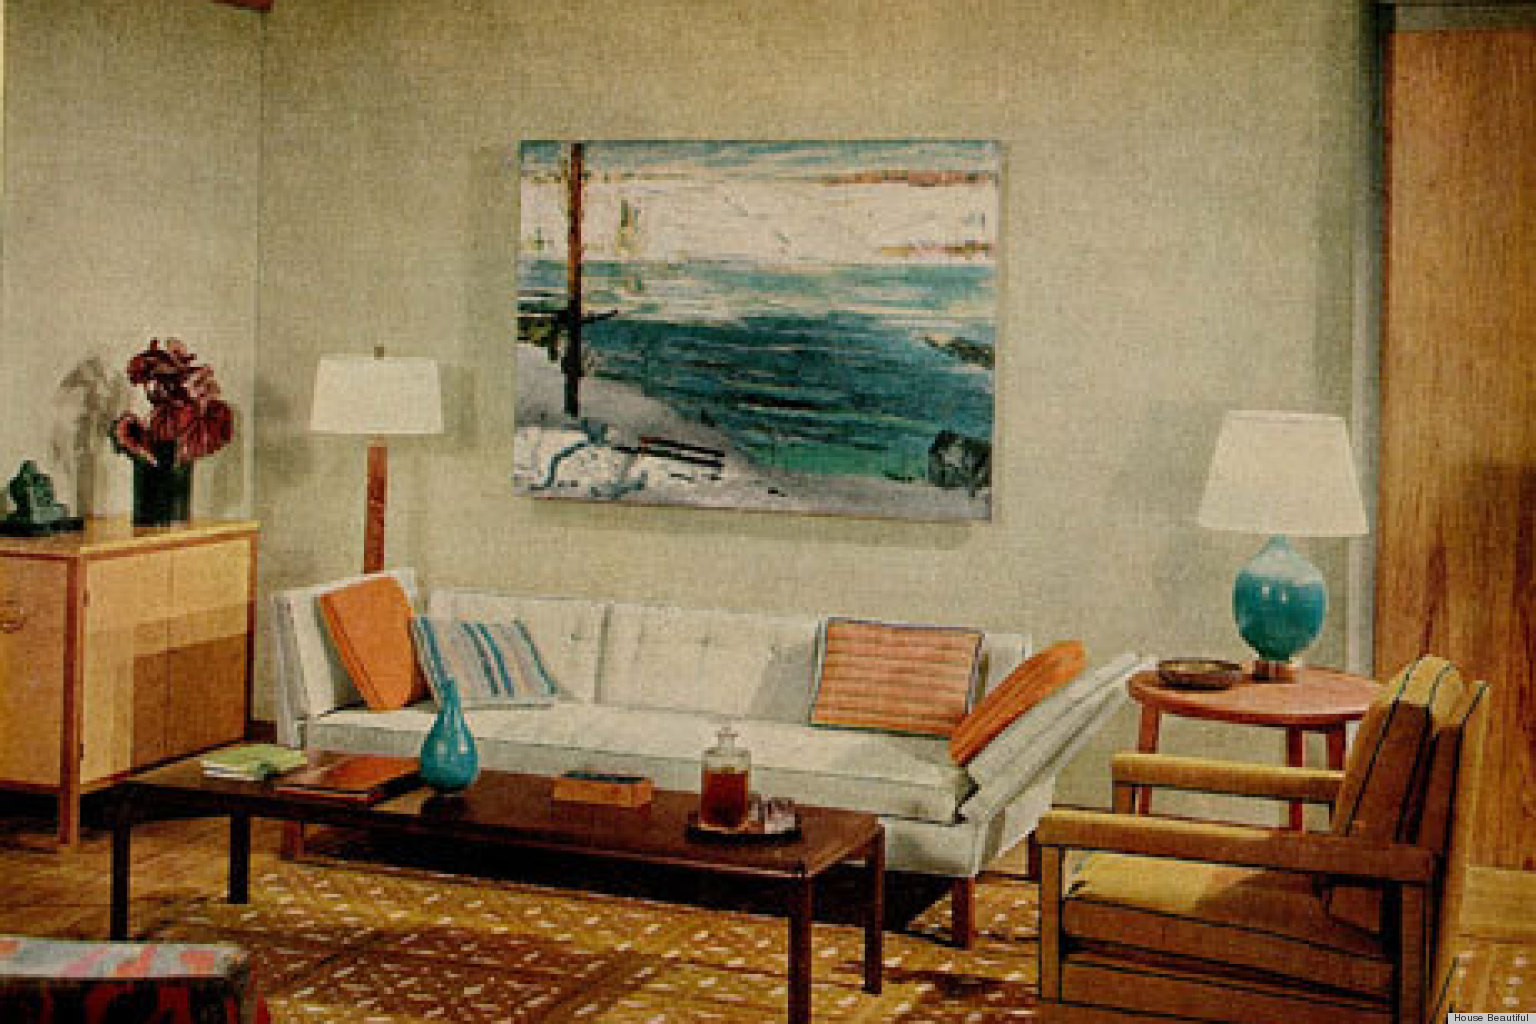 1960s interiors inspired by 39 mad men 39 from house Living room furniture styles and colors